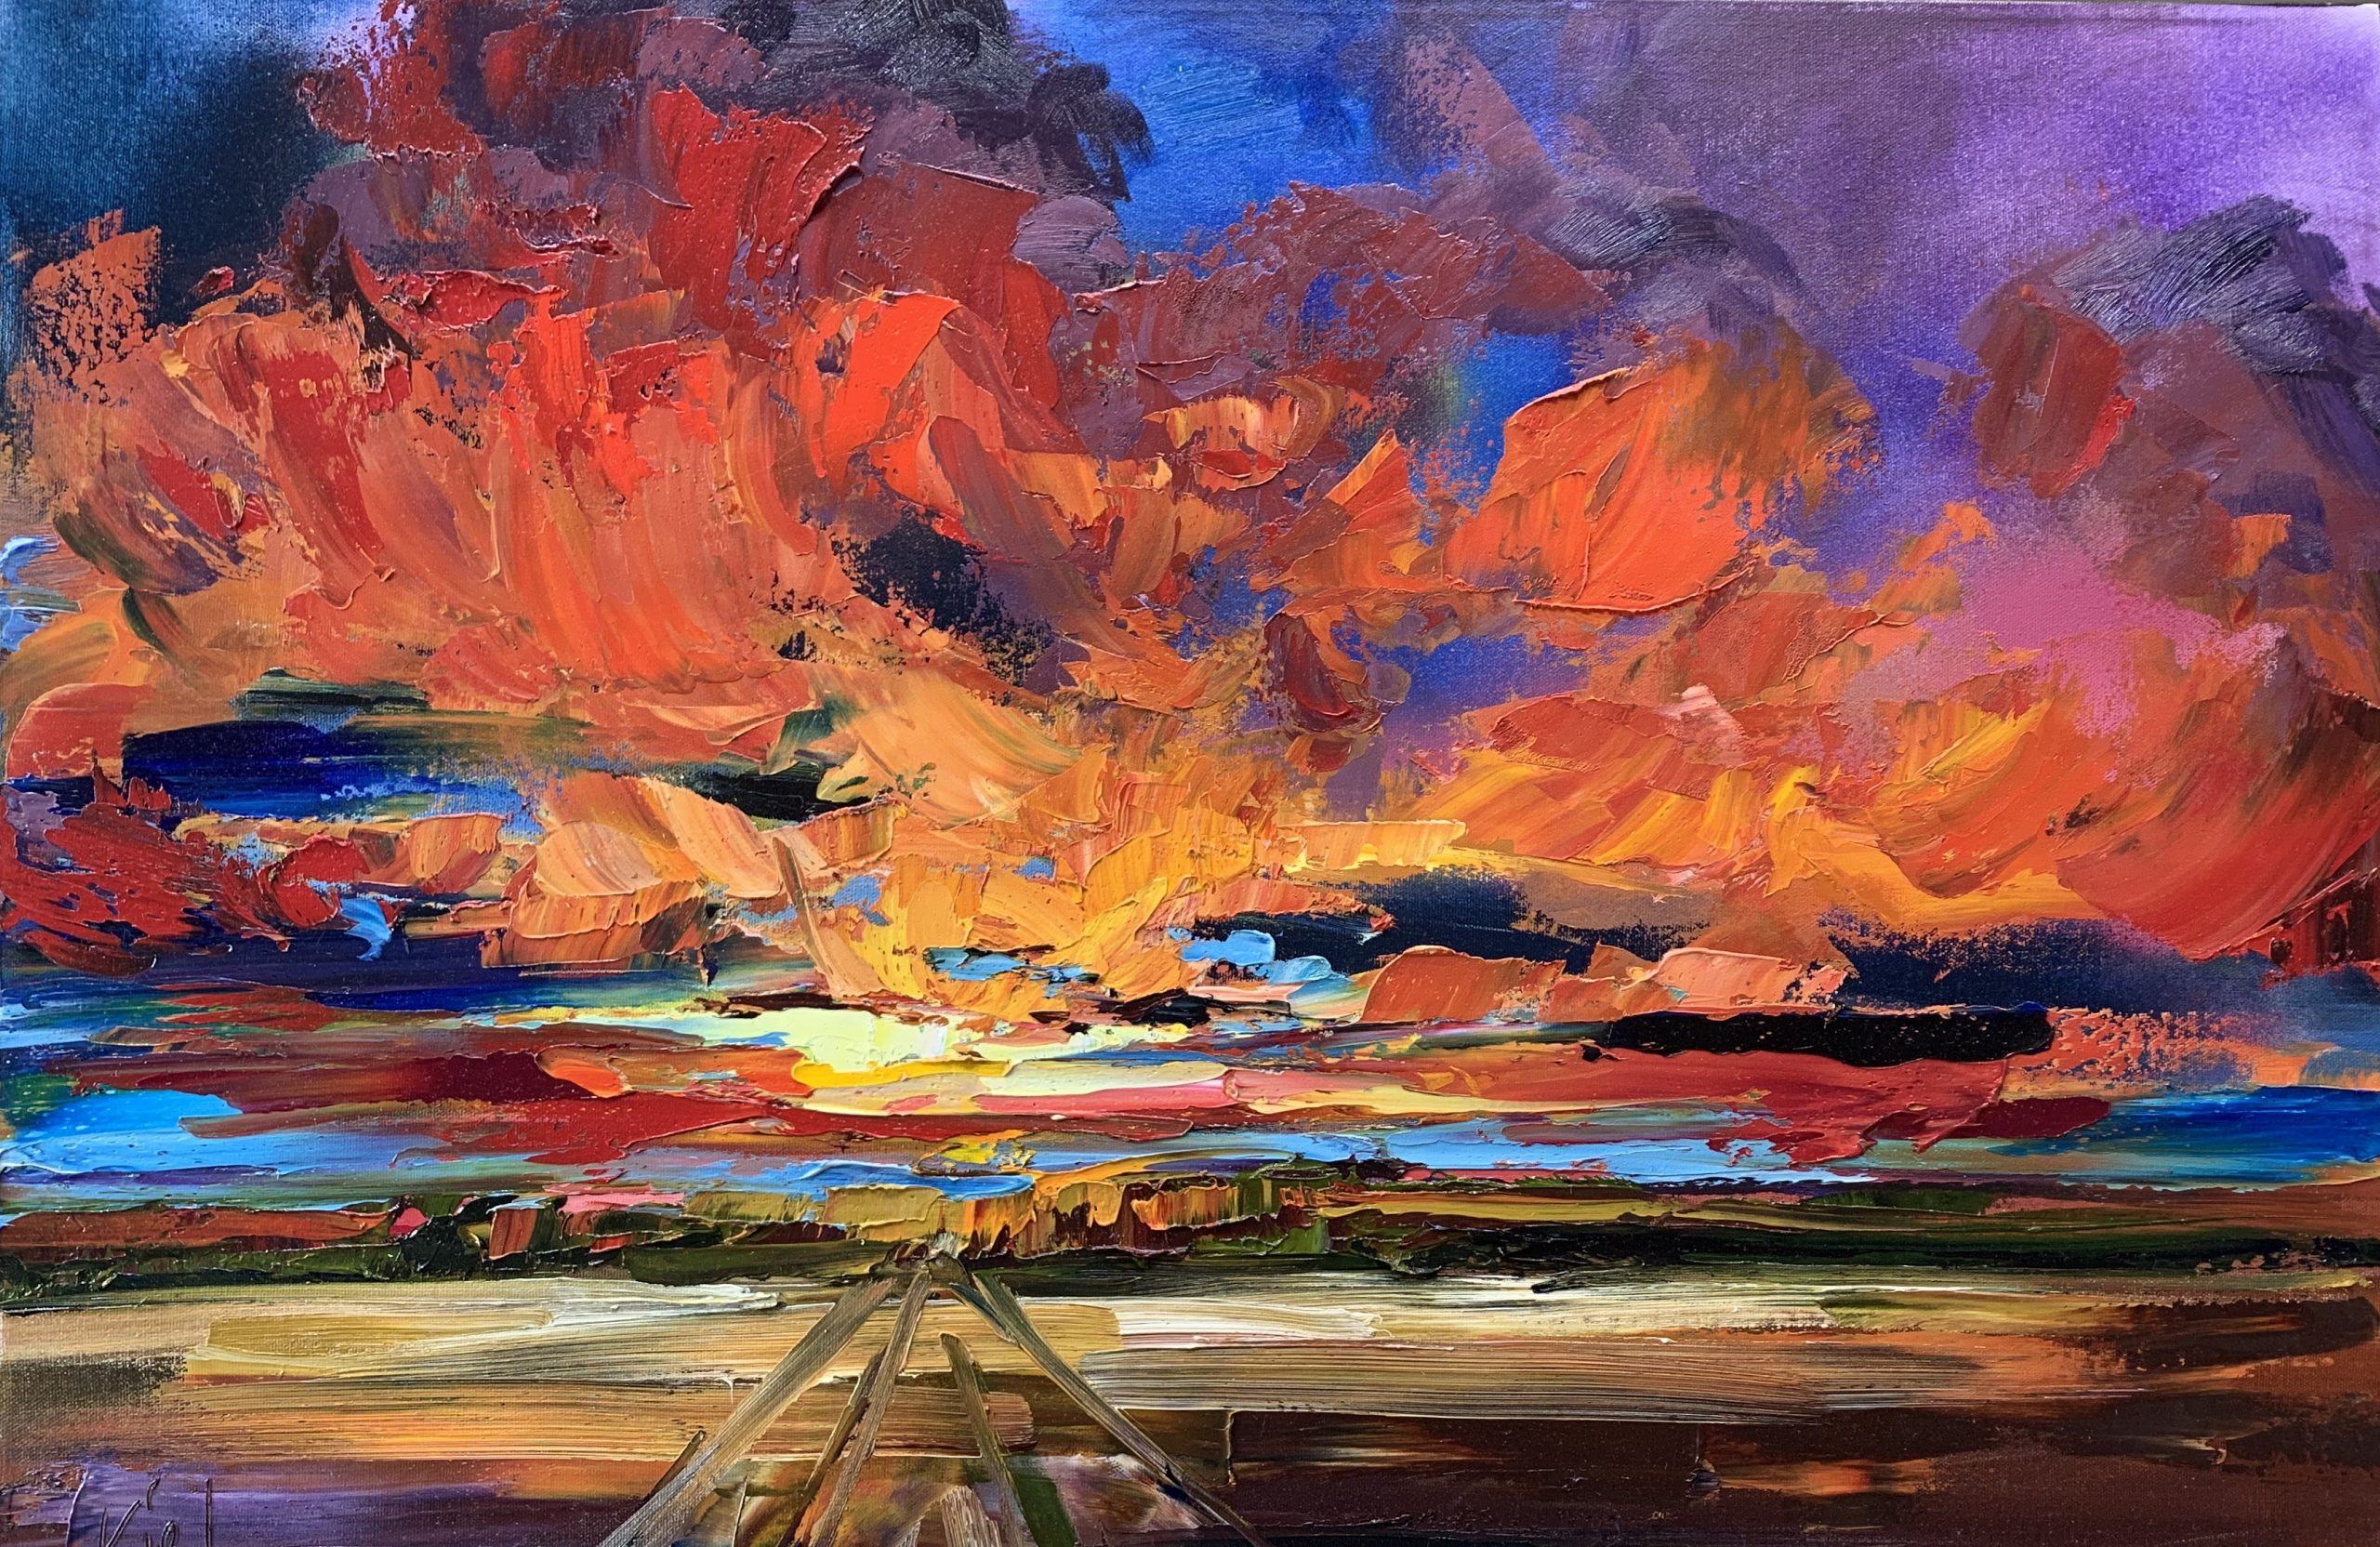 Where this Road Leads, mixed media sunset landscape painting by Kimberly Kiel | Effusion Art Gallery + Cast Glass Studio, Invermere BC